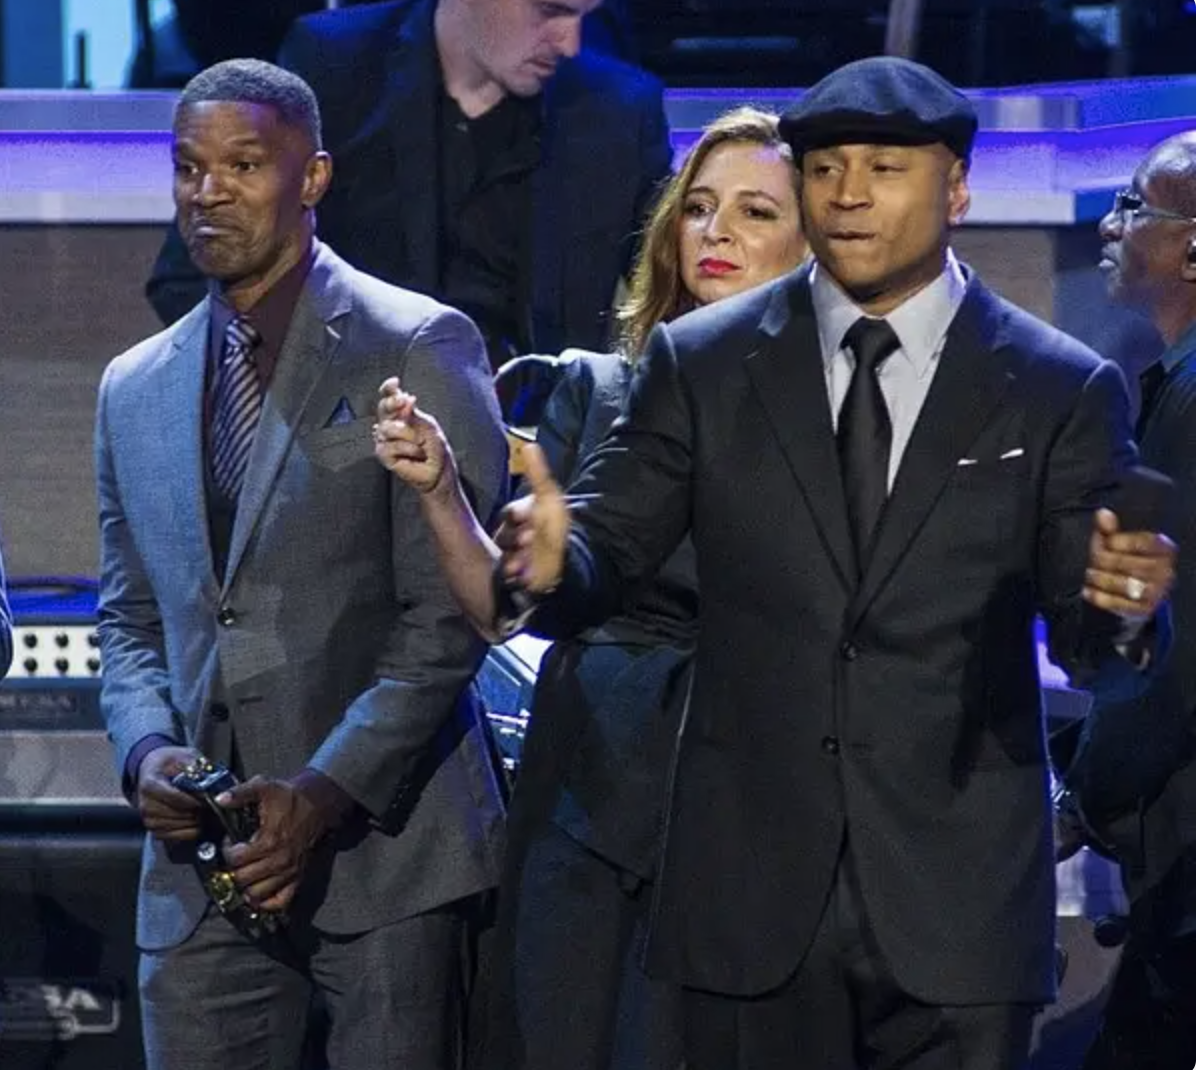 Jamie Foxx and LL Cool J dance onstage wearing suits